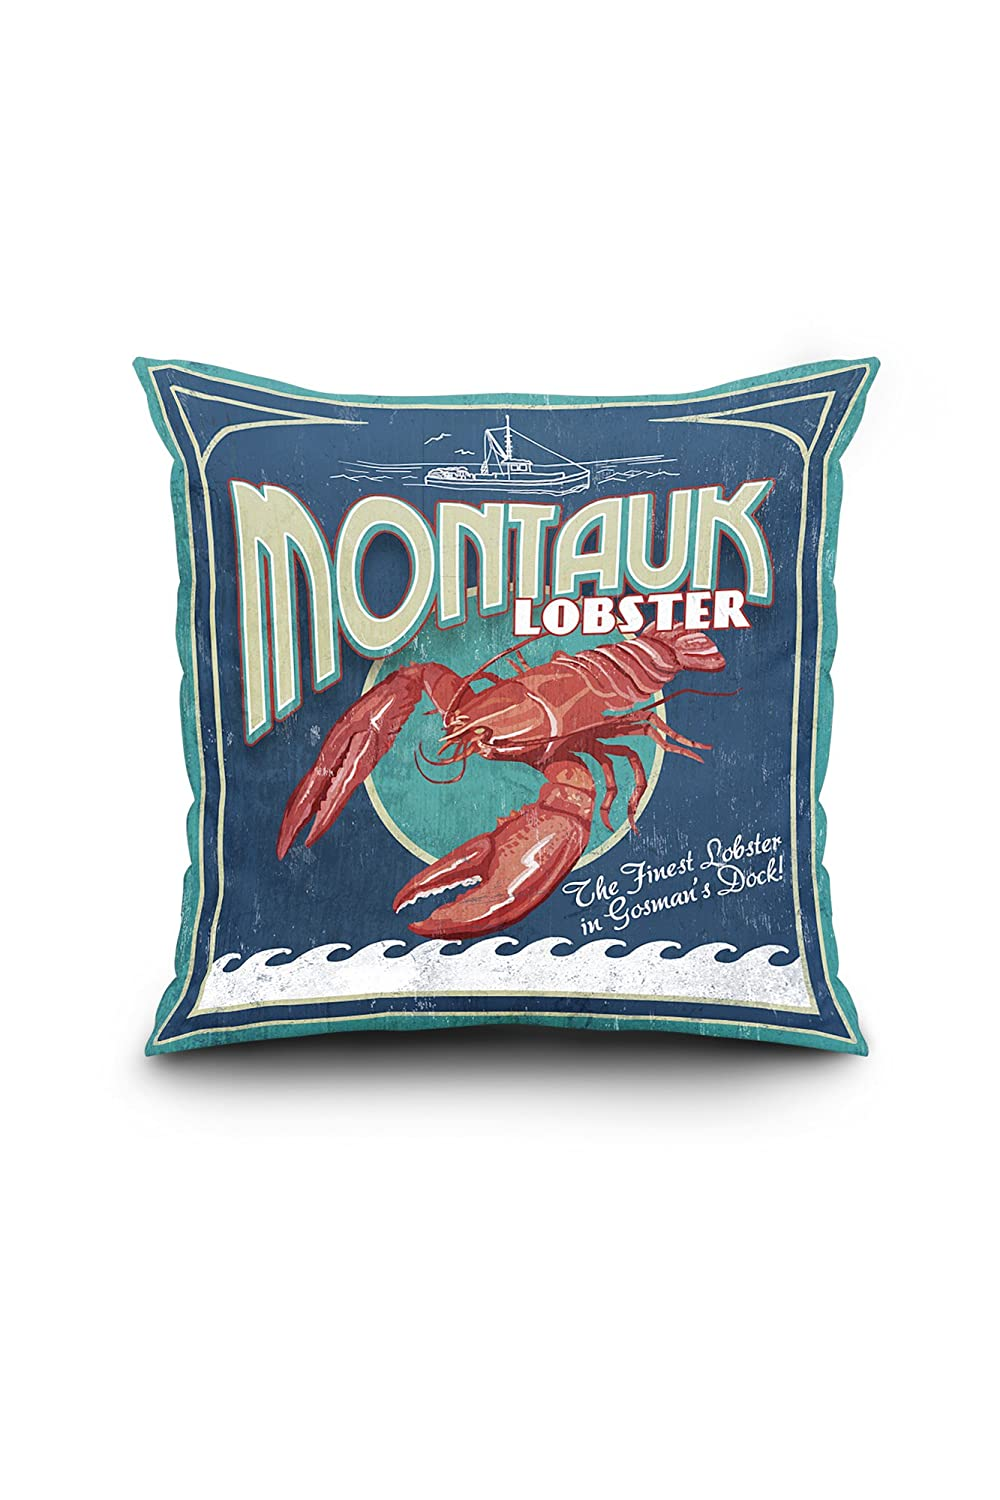 Montauk、ニューヨーク – Lobster Vintage Sign 18 x 18 Pillow (Full Art Border) LANT-3P-PW-SQ-40648-18x18 B01N99TPLP  18 x 18 Pillow (Full Art Border)